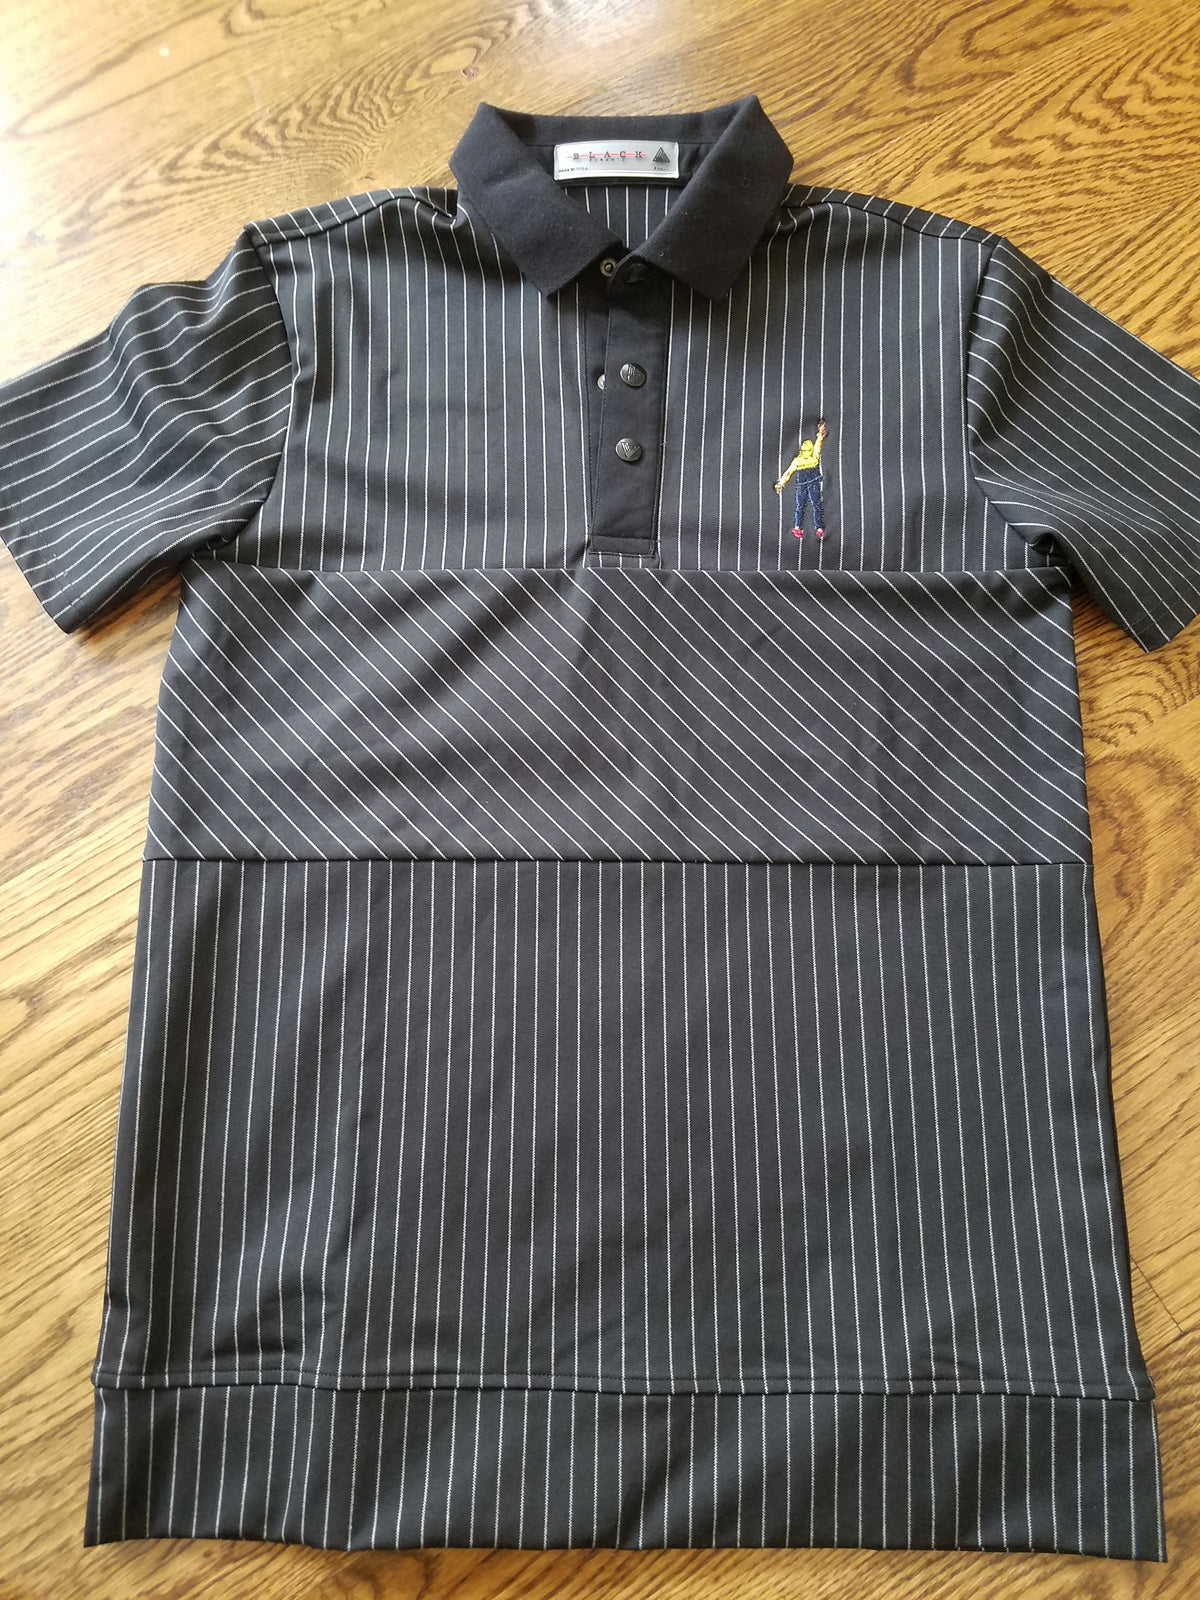 STRIPED POLO Y1160092 - cosign1975